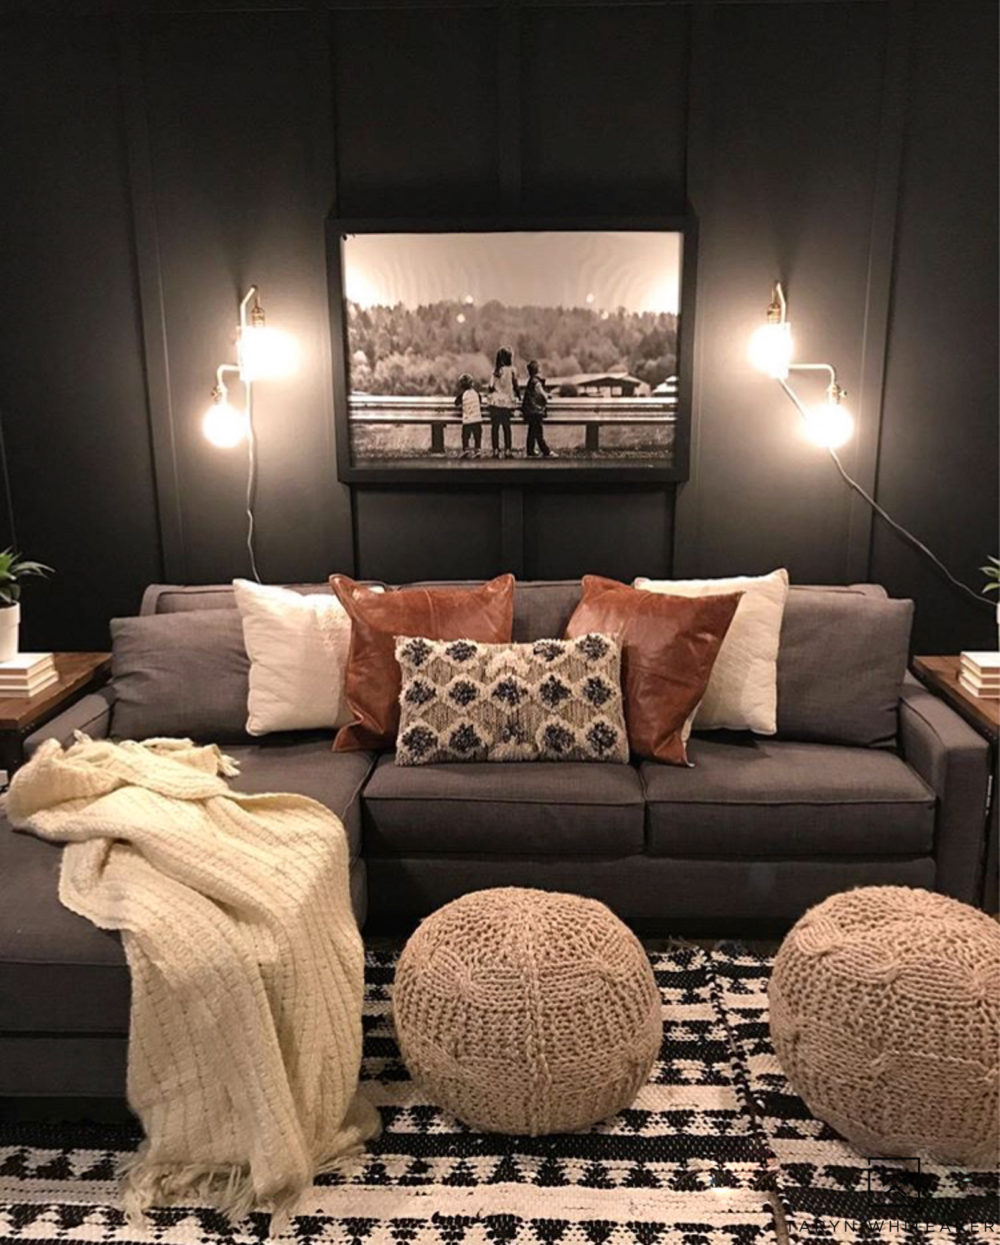 Don't be afraid of using a bold dark paint on your walls! The charcoal gray walls make a huge impact in this rustic modern movie room!